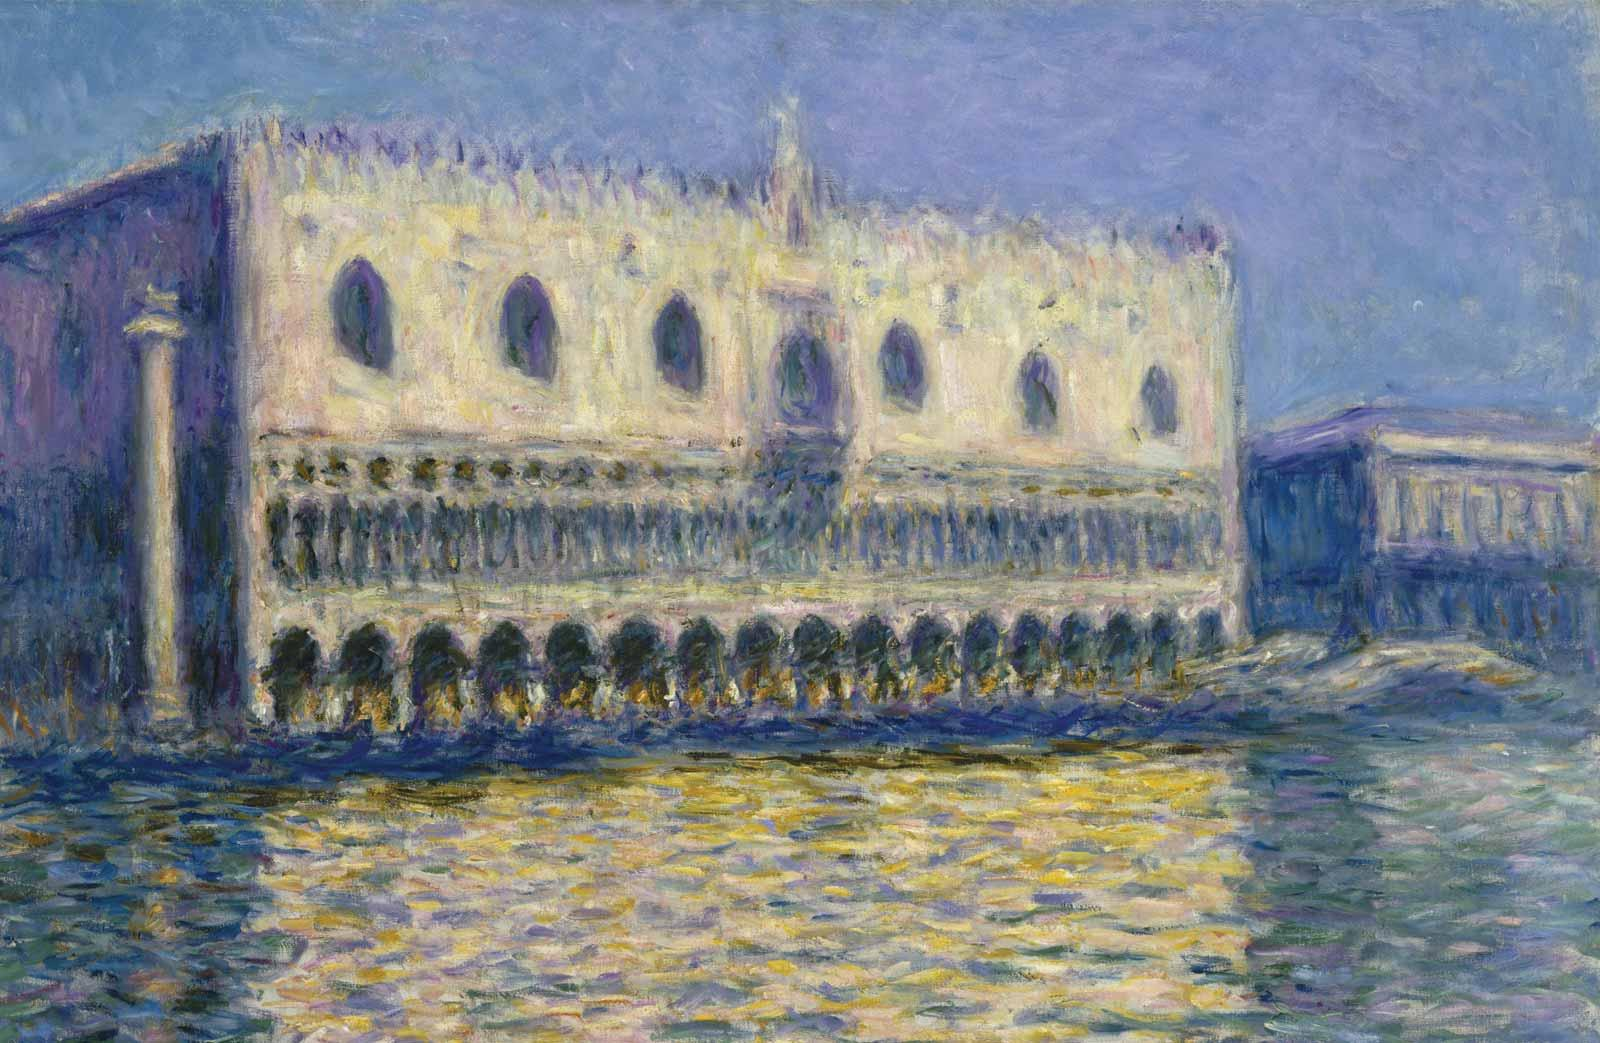 Claude Monet, The Doge's Palace, 1908.